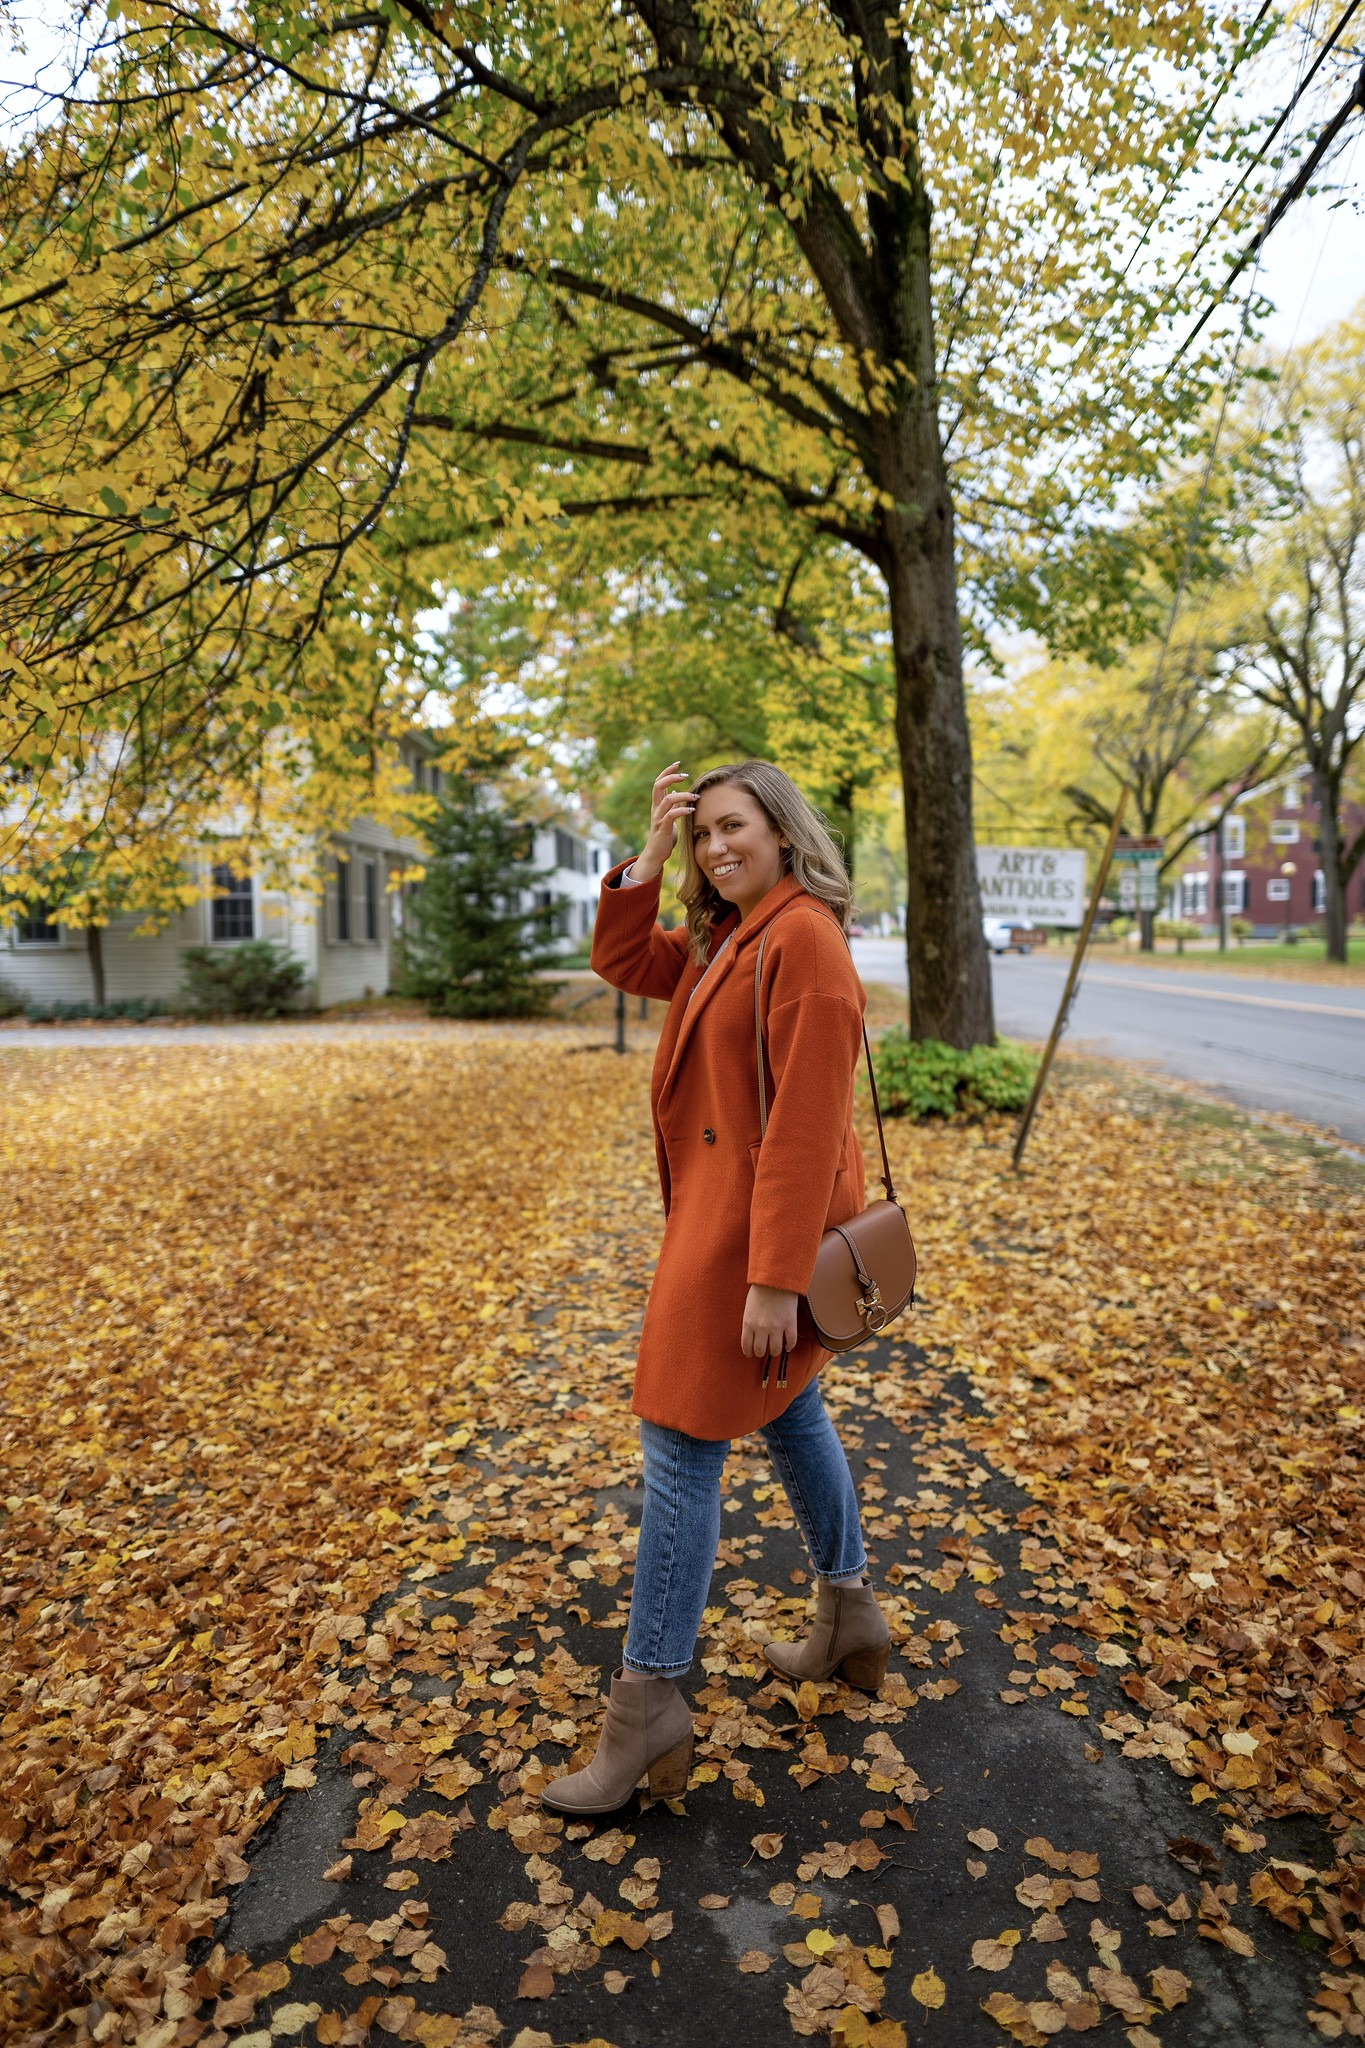 Walking through the leaves | Woodstock VT | My Complete Vermont Fall Travel Guide: What to See, Do & Eat | Ultimate Fall Guide to Vermont | 5 Day Vermont Road Trip | Fall Foliage Road Trip Guide